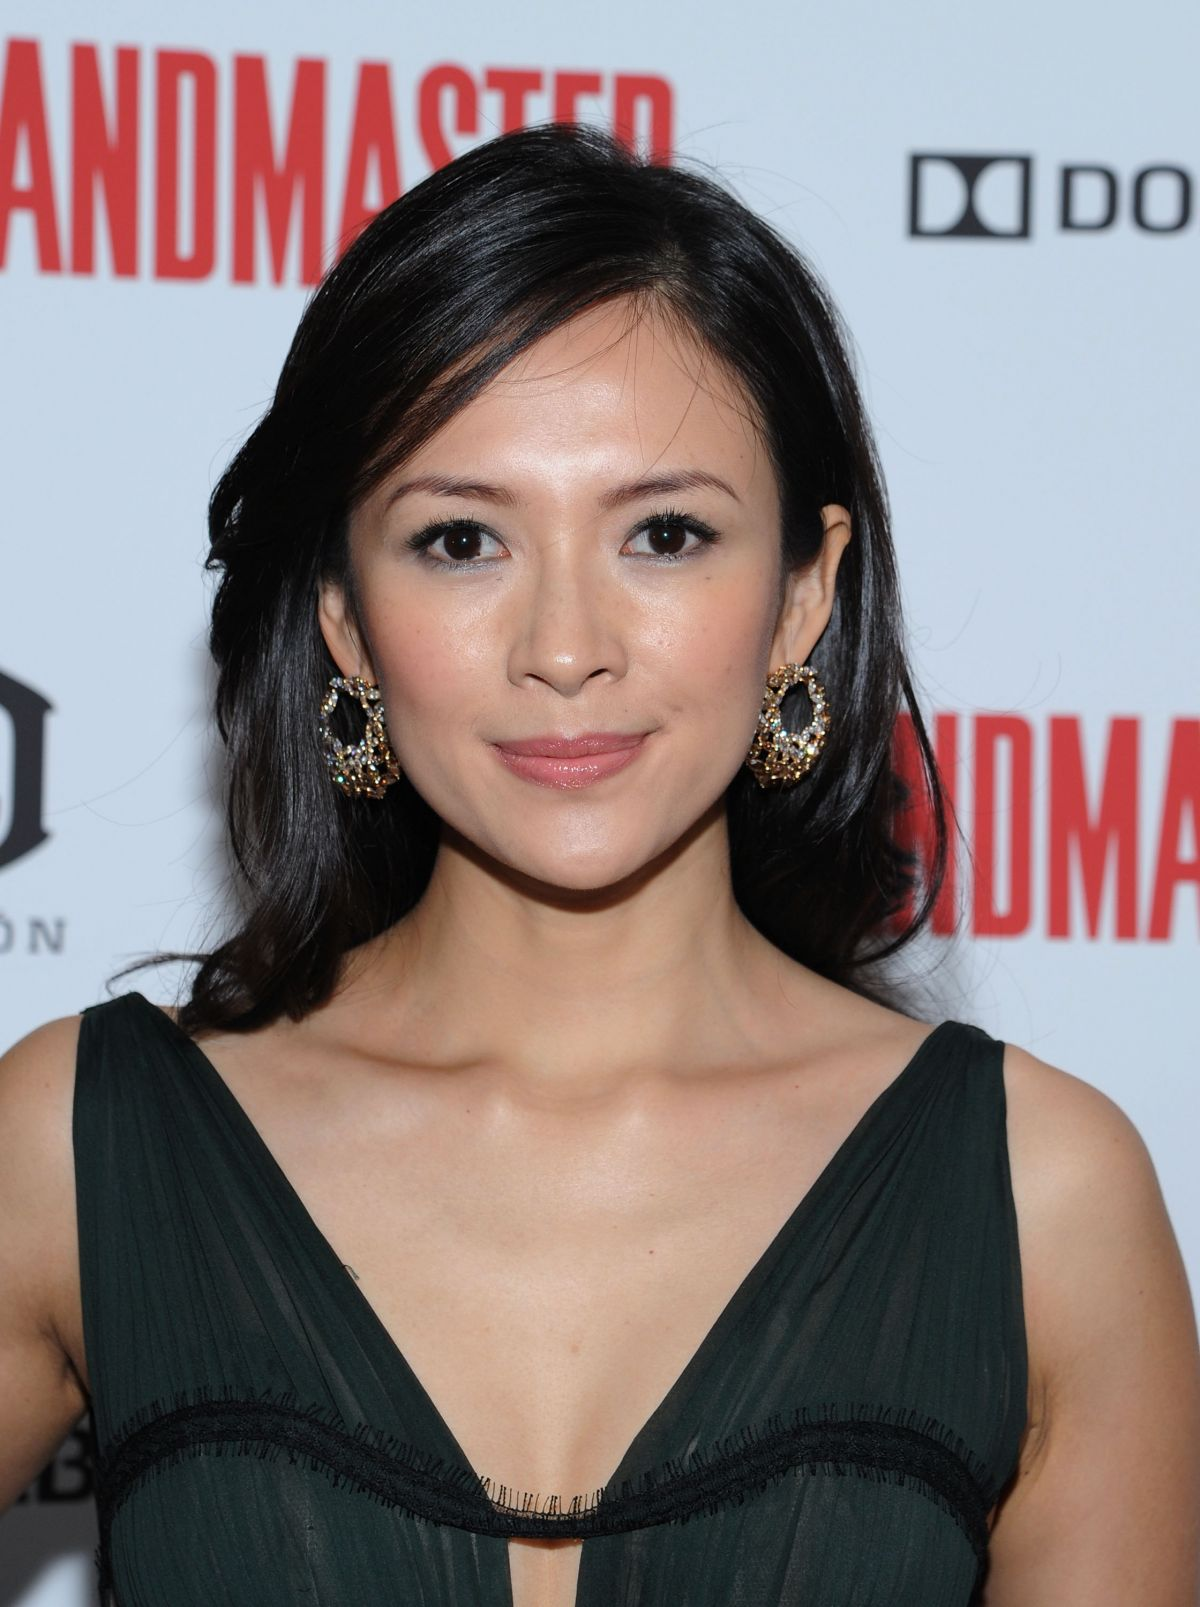 Ziyi Zhang At The Grandmaster Screening In NYC